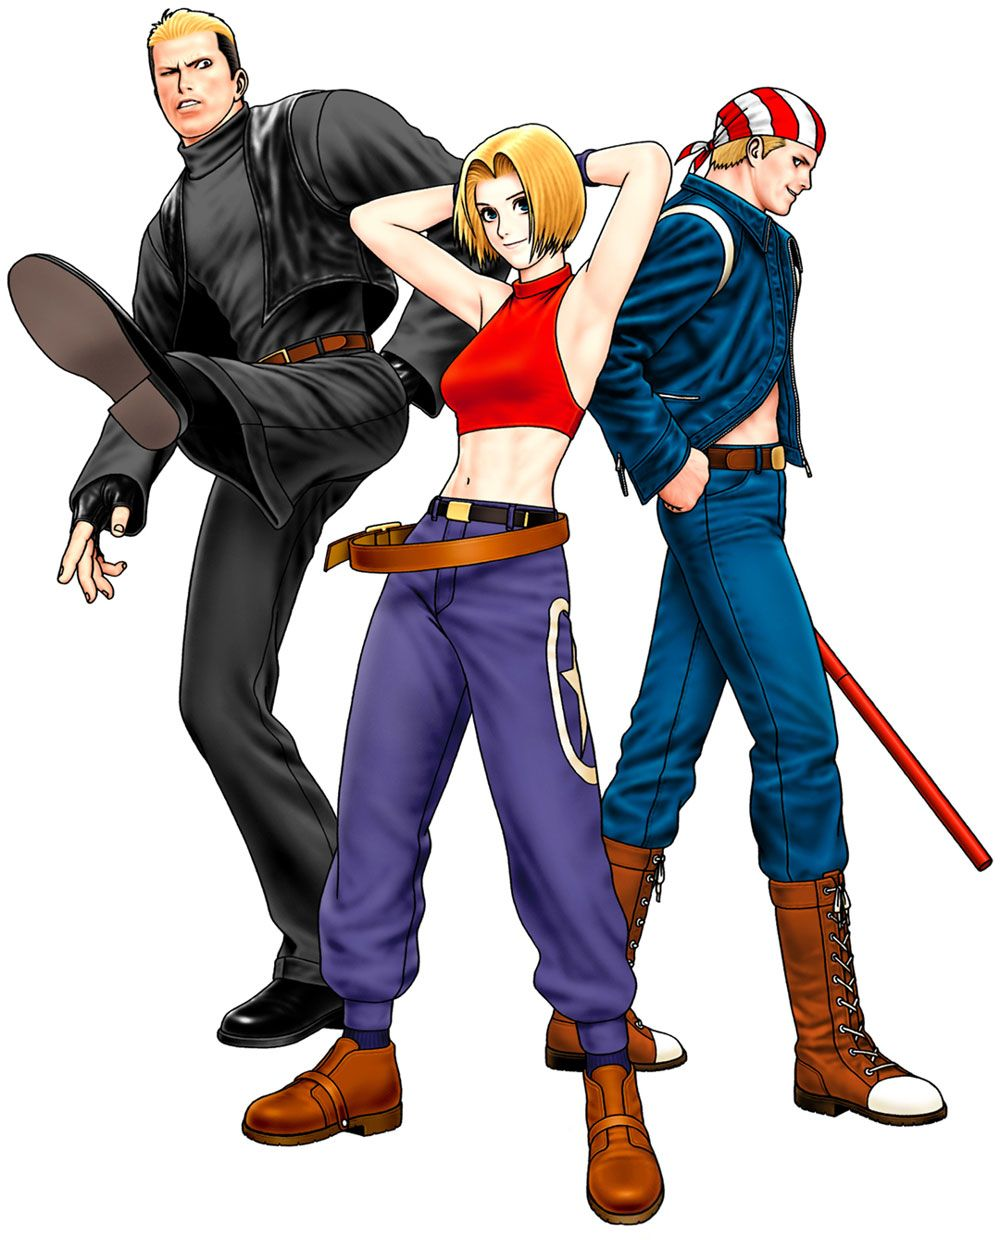 Special Team From The King Of Fighters 98 Ultimate Match King Of Fighters Capcom Vs Snk Fighter